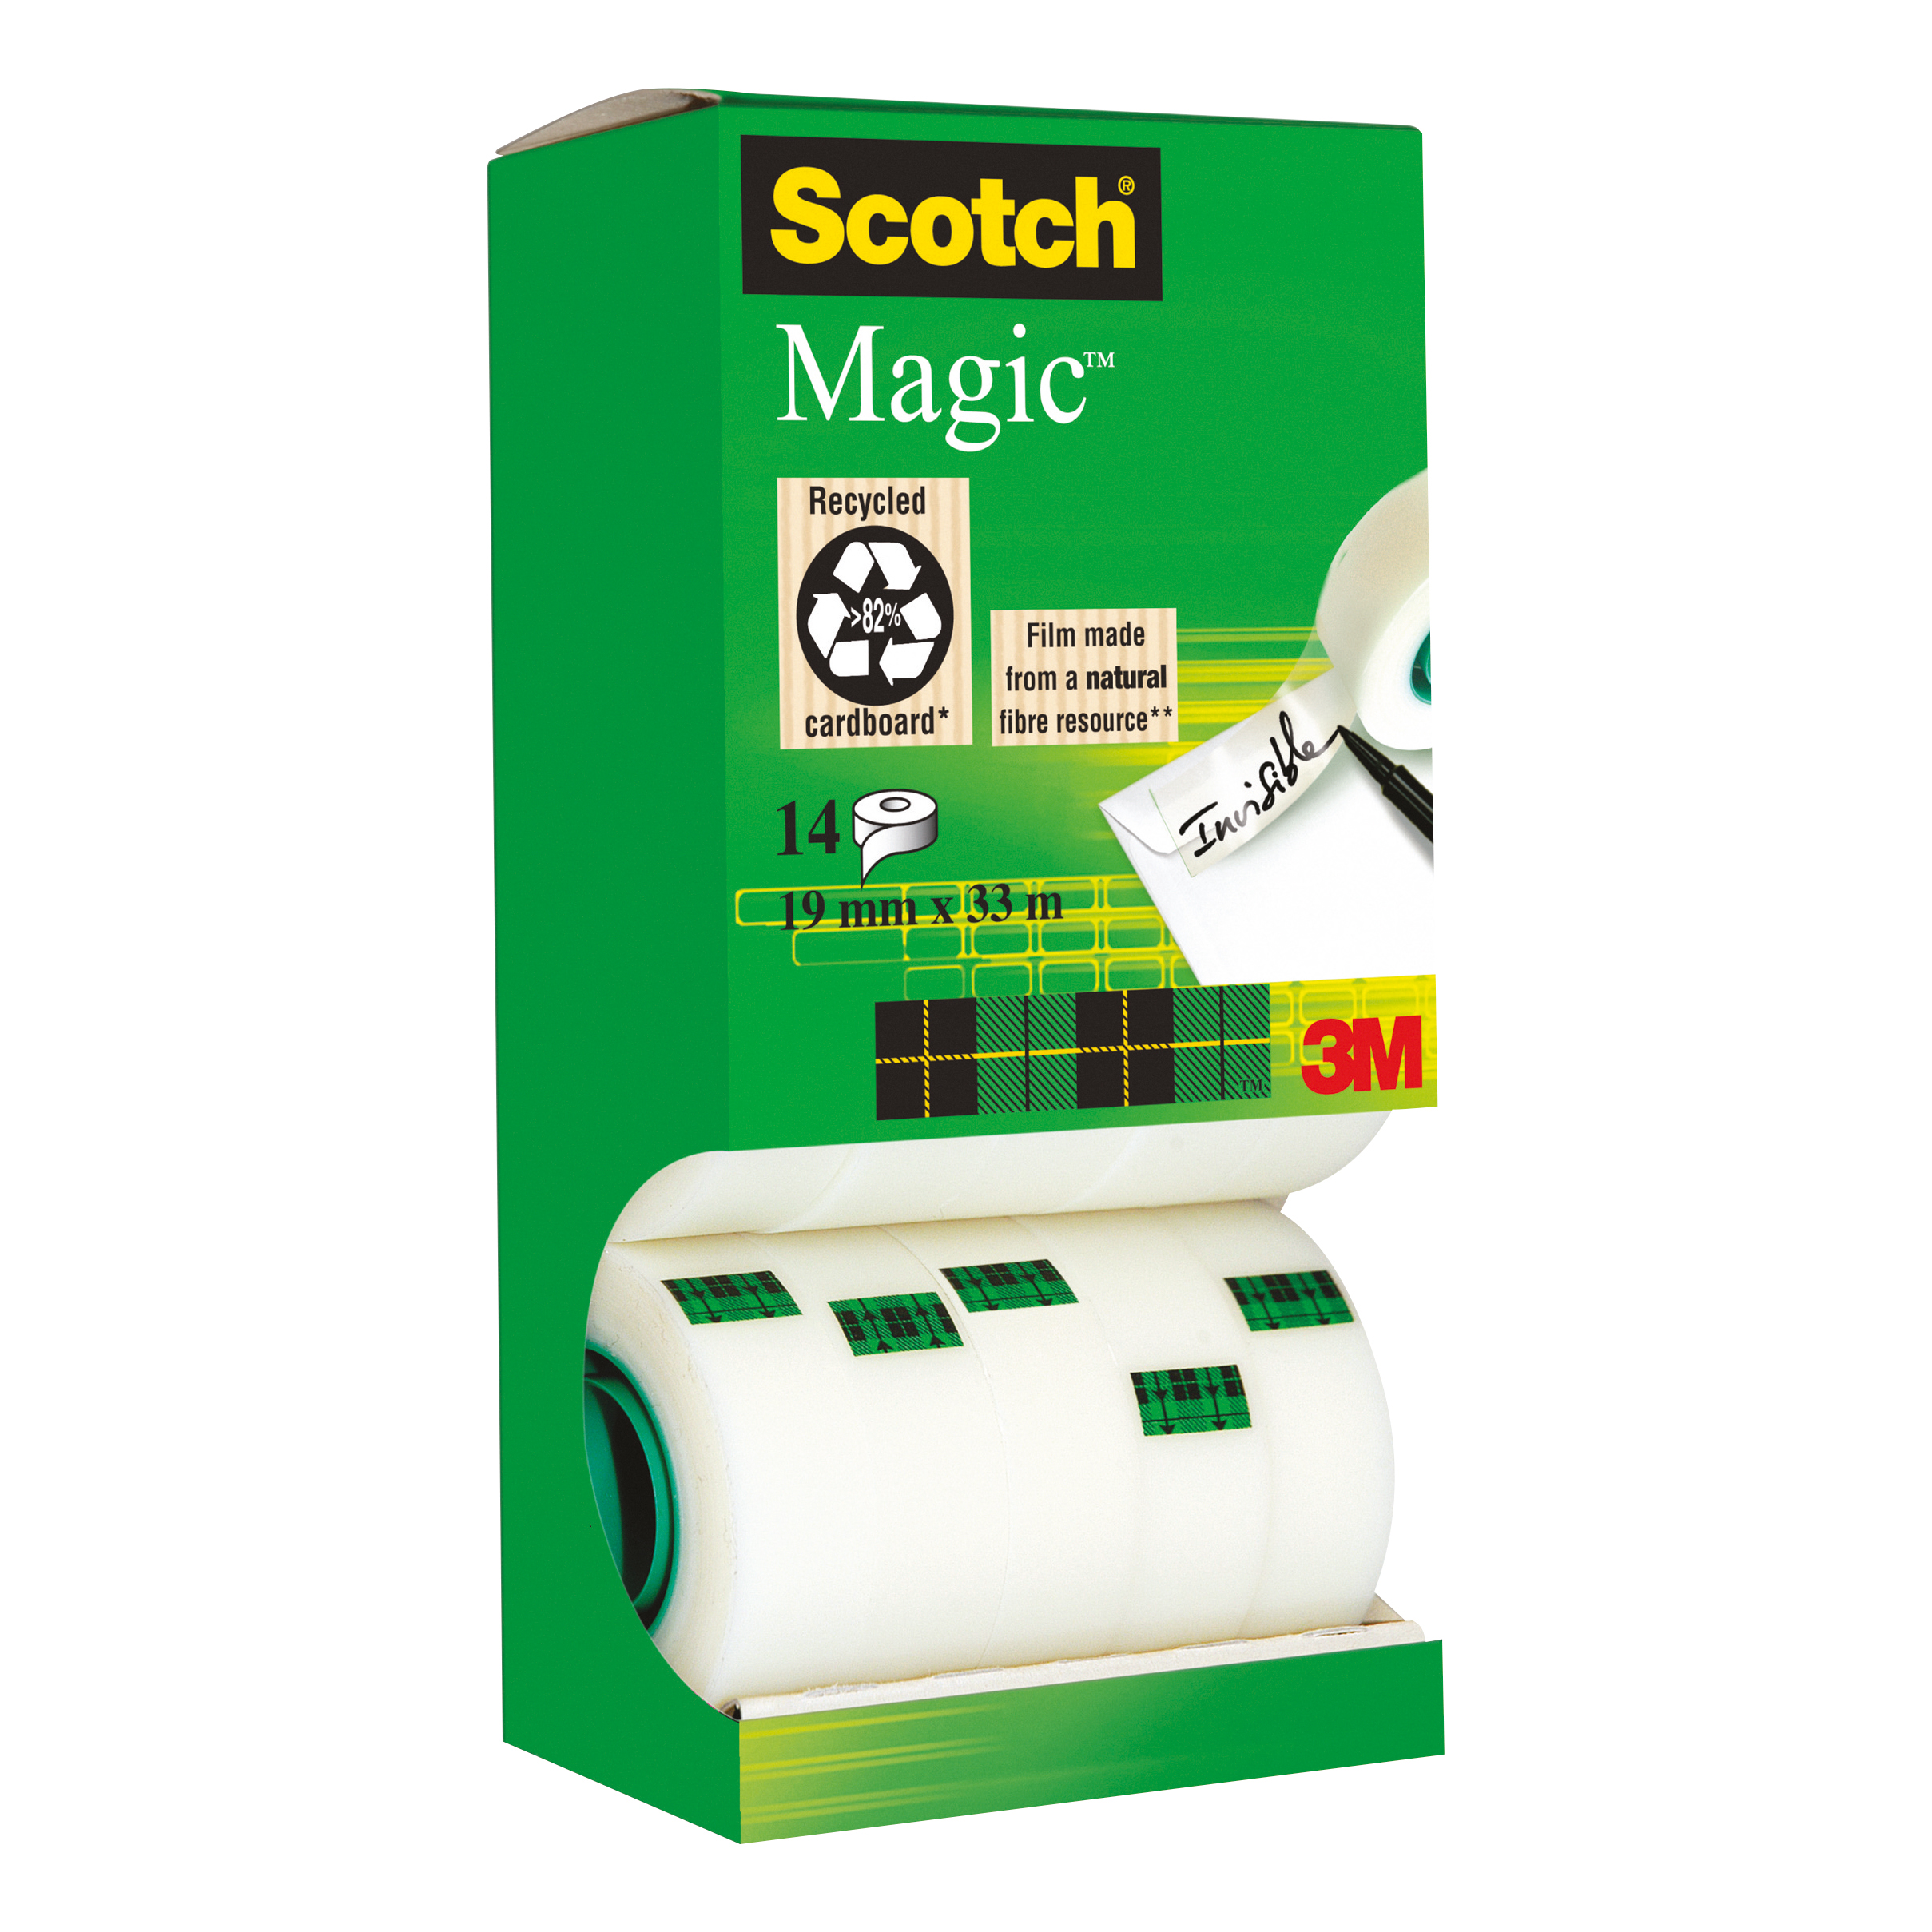 Scotch Magic Tape Value Pack 19mmx33m Ref 81933R14 12 rolls & 2 FREE